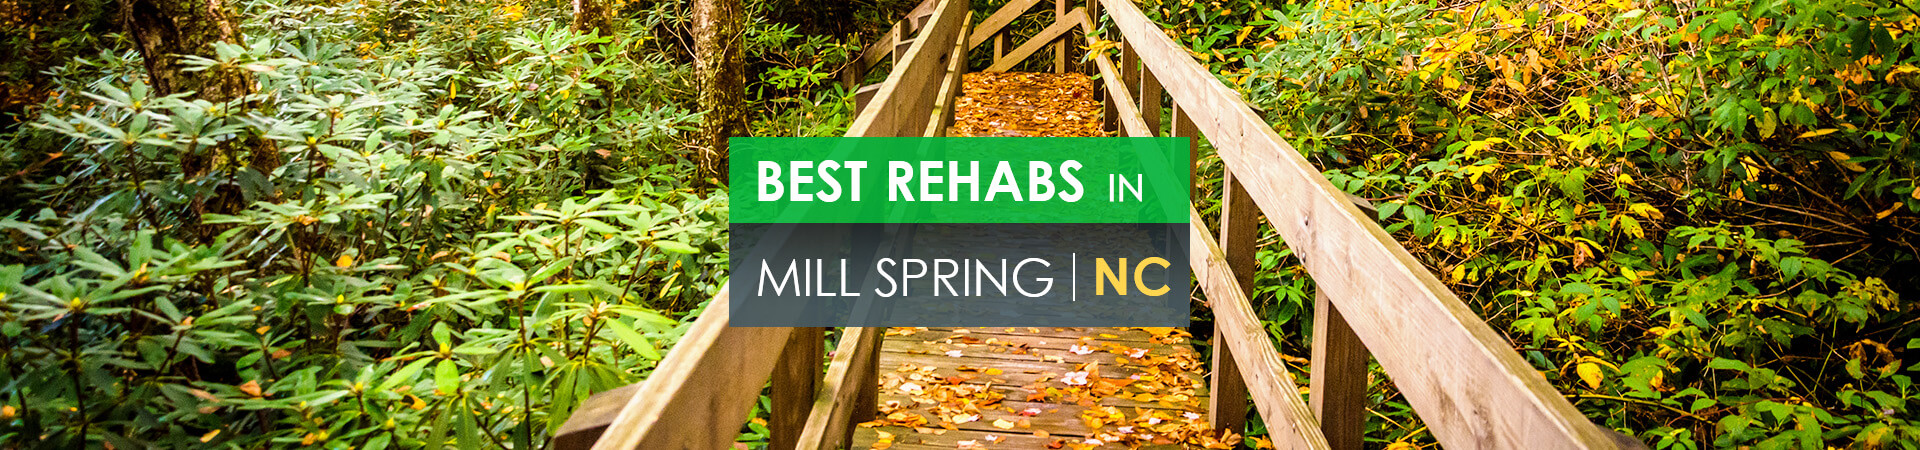 Best rehabs in Mill Spring, NC